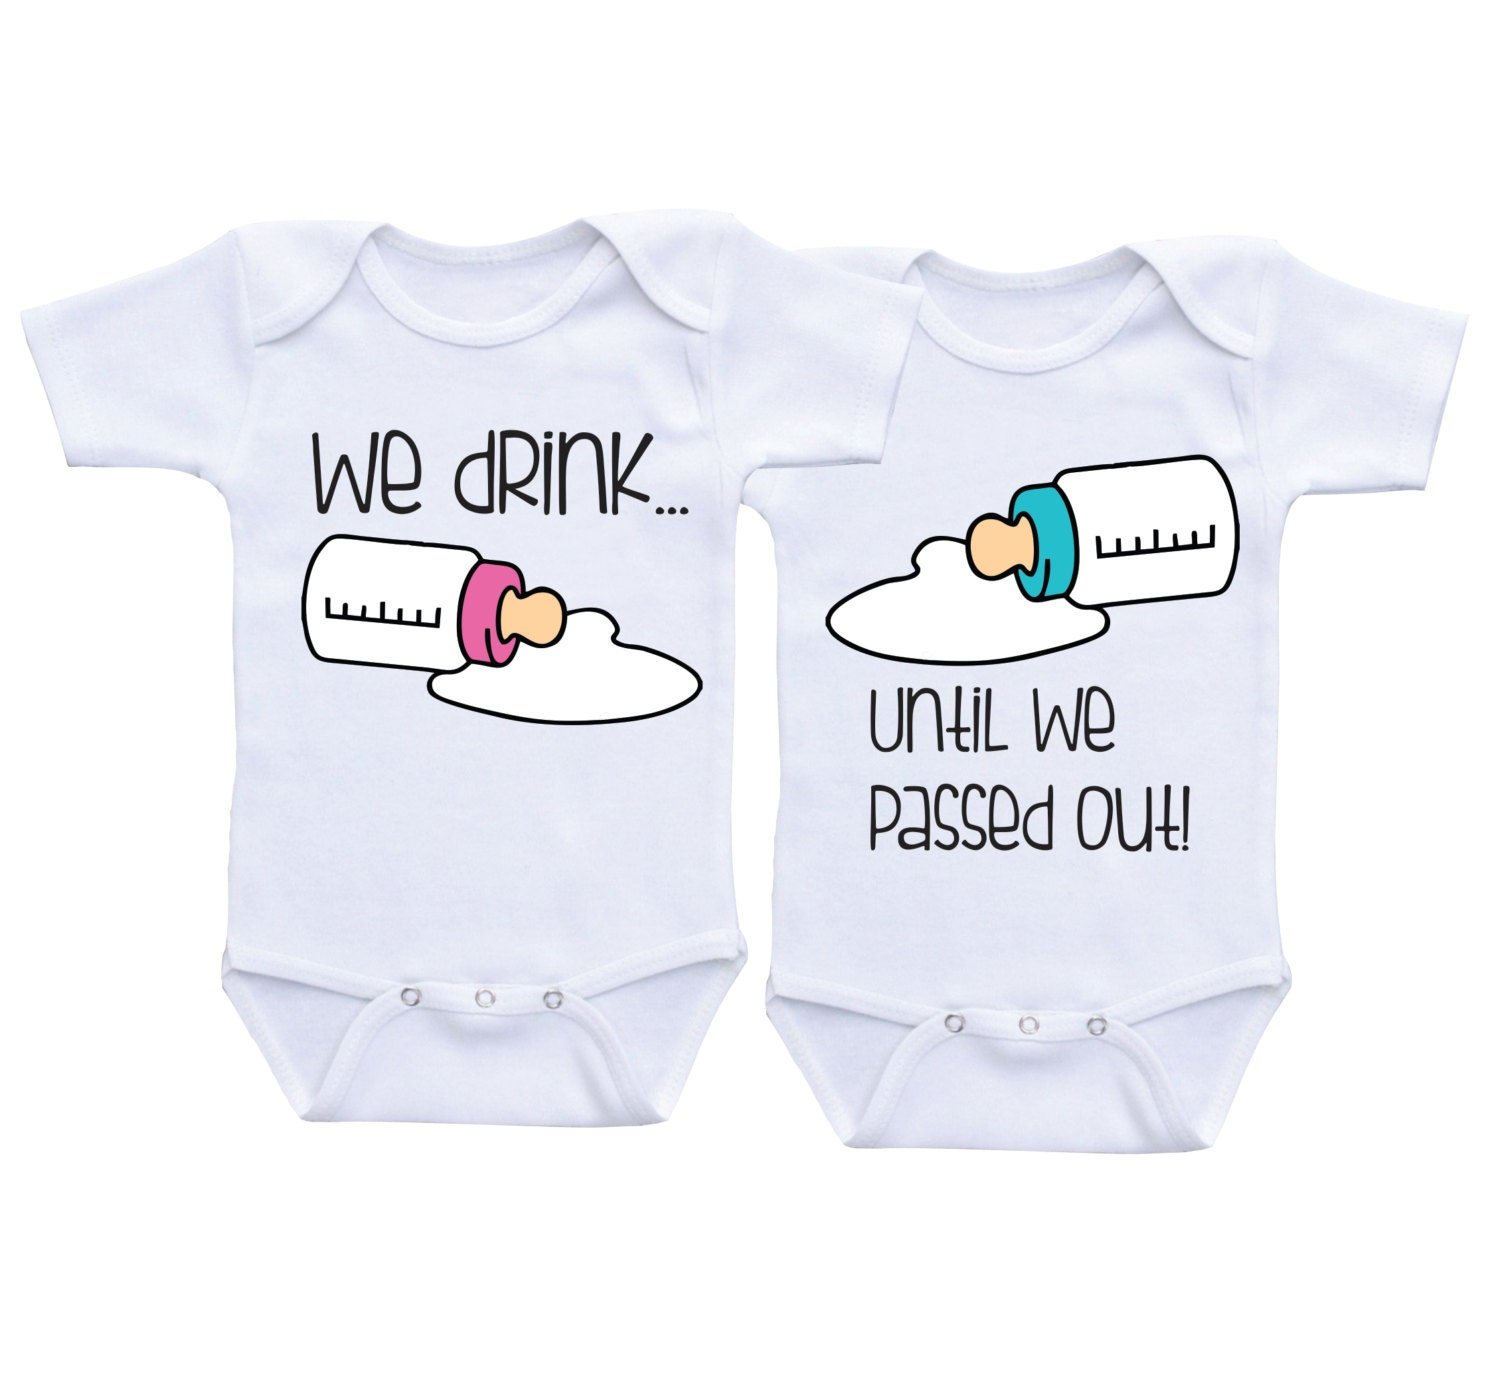 Baby Gift Sets For Twins : Boy girl twins baby gifts matching by